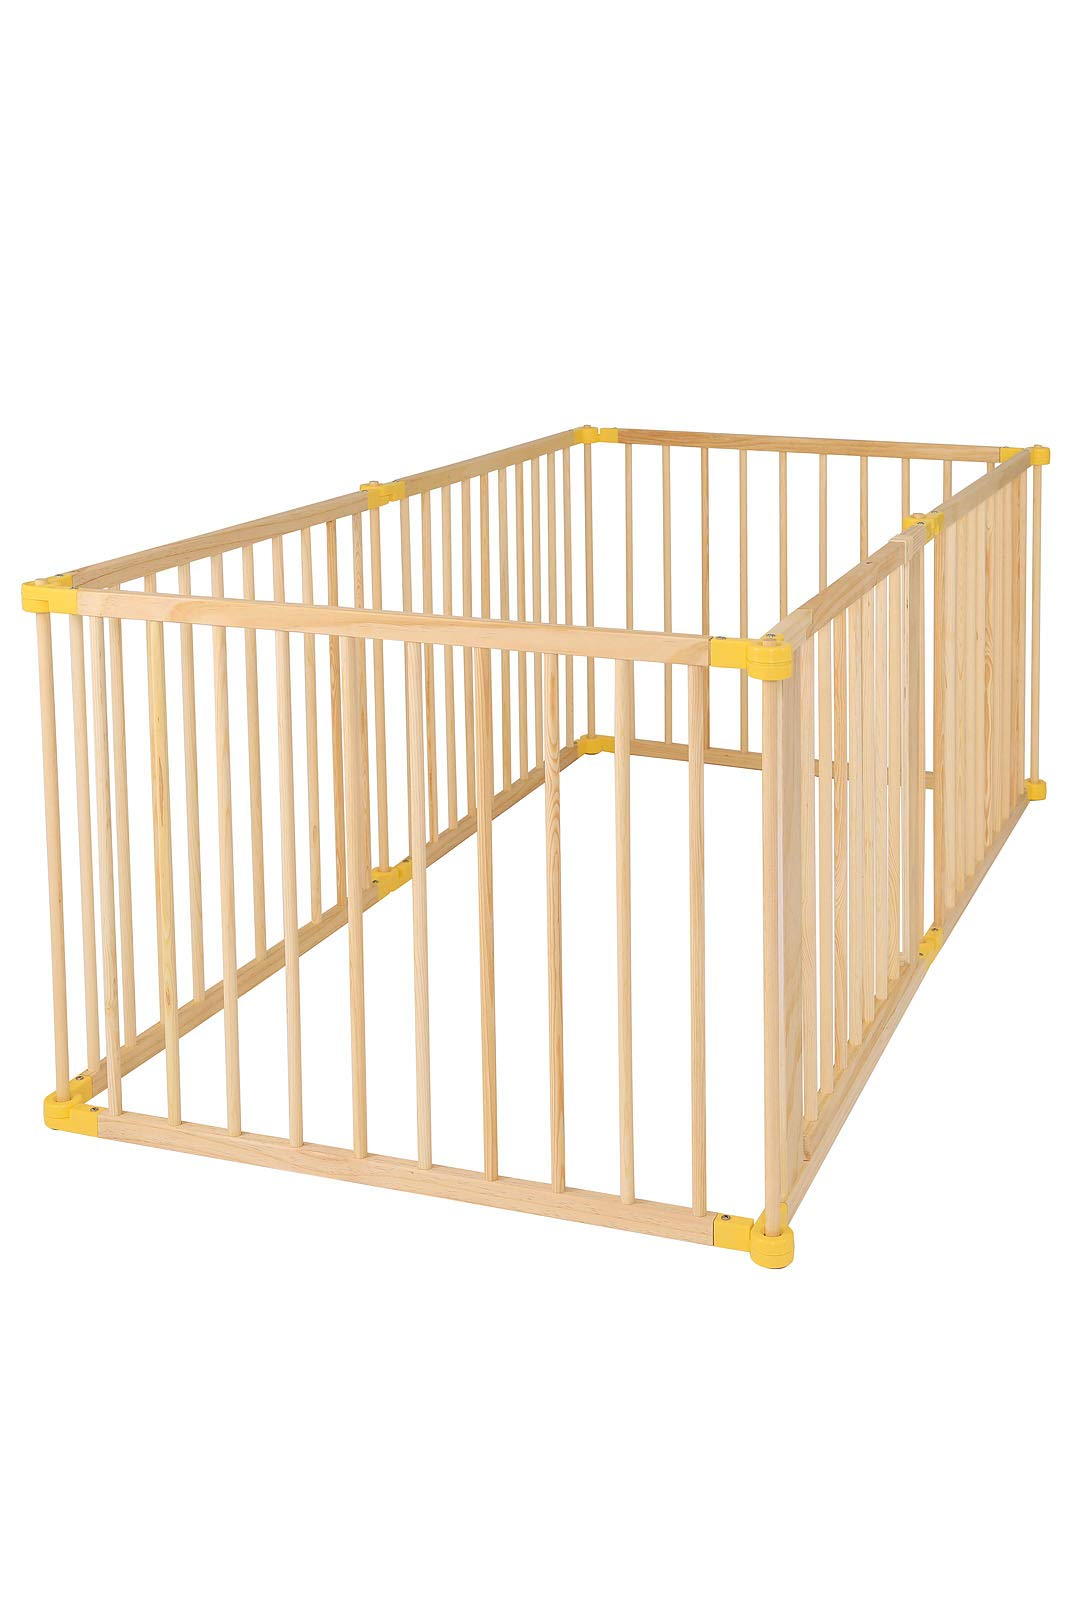 dibea DP00586 Baby Child Playpen, Wood, 270° Foldable incl. Door, 6 Panels Each 90x68cm dibea Wooden playpen with door, height 68 cm, 6 elements (including 1 door) each 90 x 68 cm (L, H). Distance between the single bars about 7, 5 cm 270 ° foldable, lockable form, flexibly usable as a playpen, protective grid, room divider or stair guard Rubber coating under the feet, so that the grid can not be moved by the baby 1